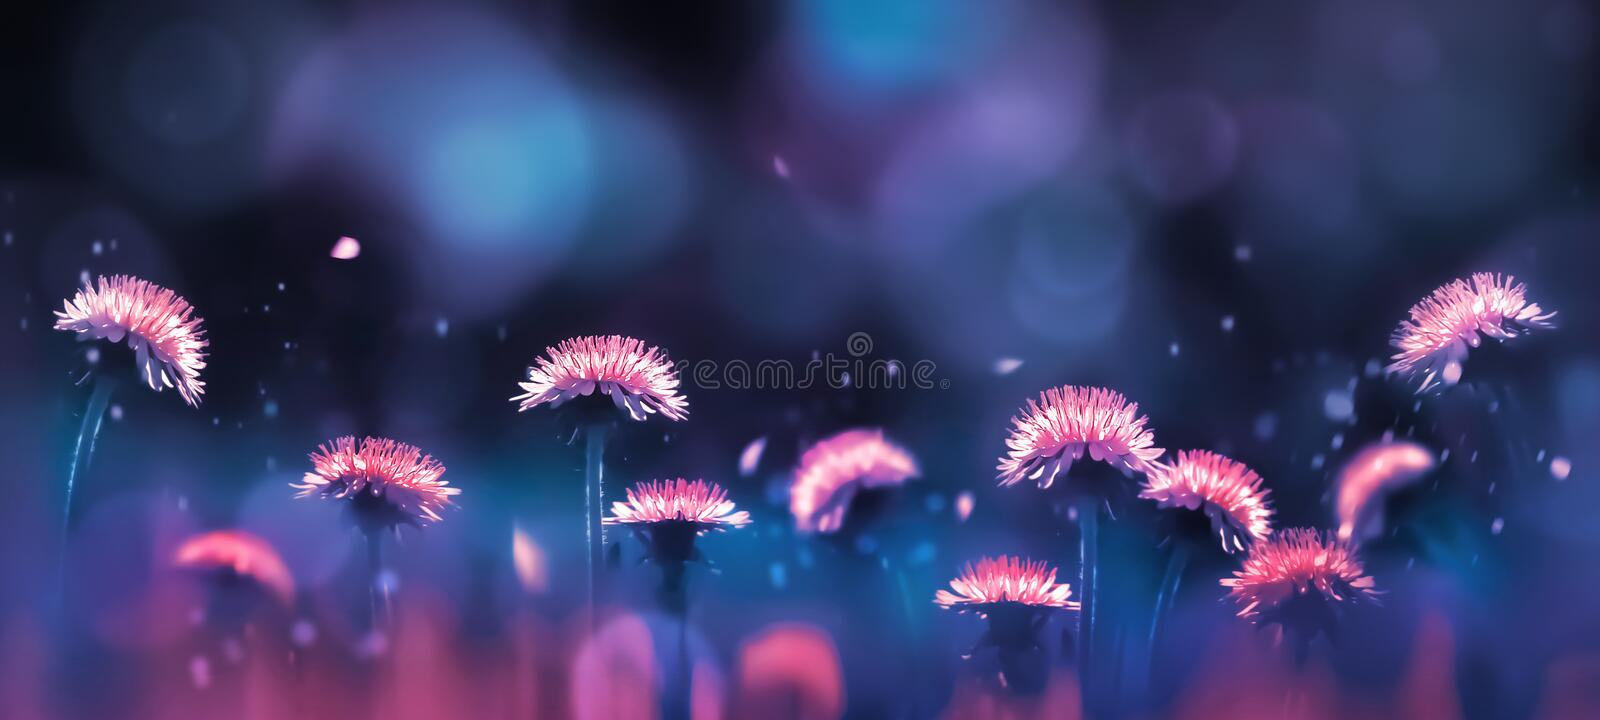 Fabulous amazing bright pink dandelions on a blue and purple background in the rays of light. Summer background. Free space for text. Banner royalty free stock photos